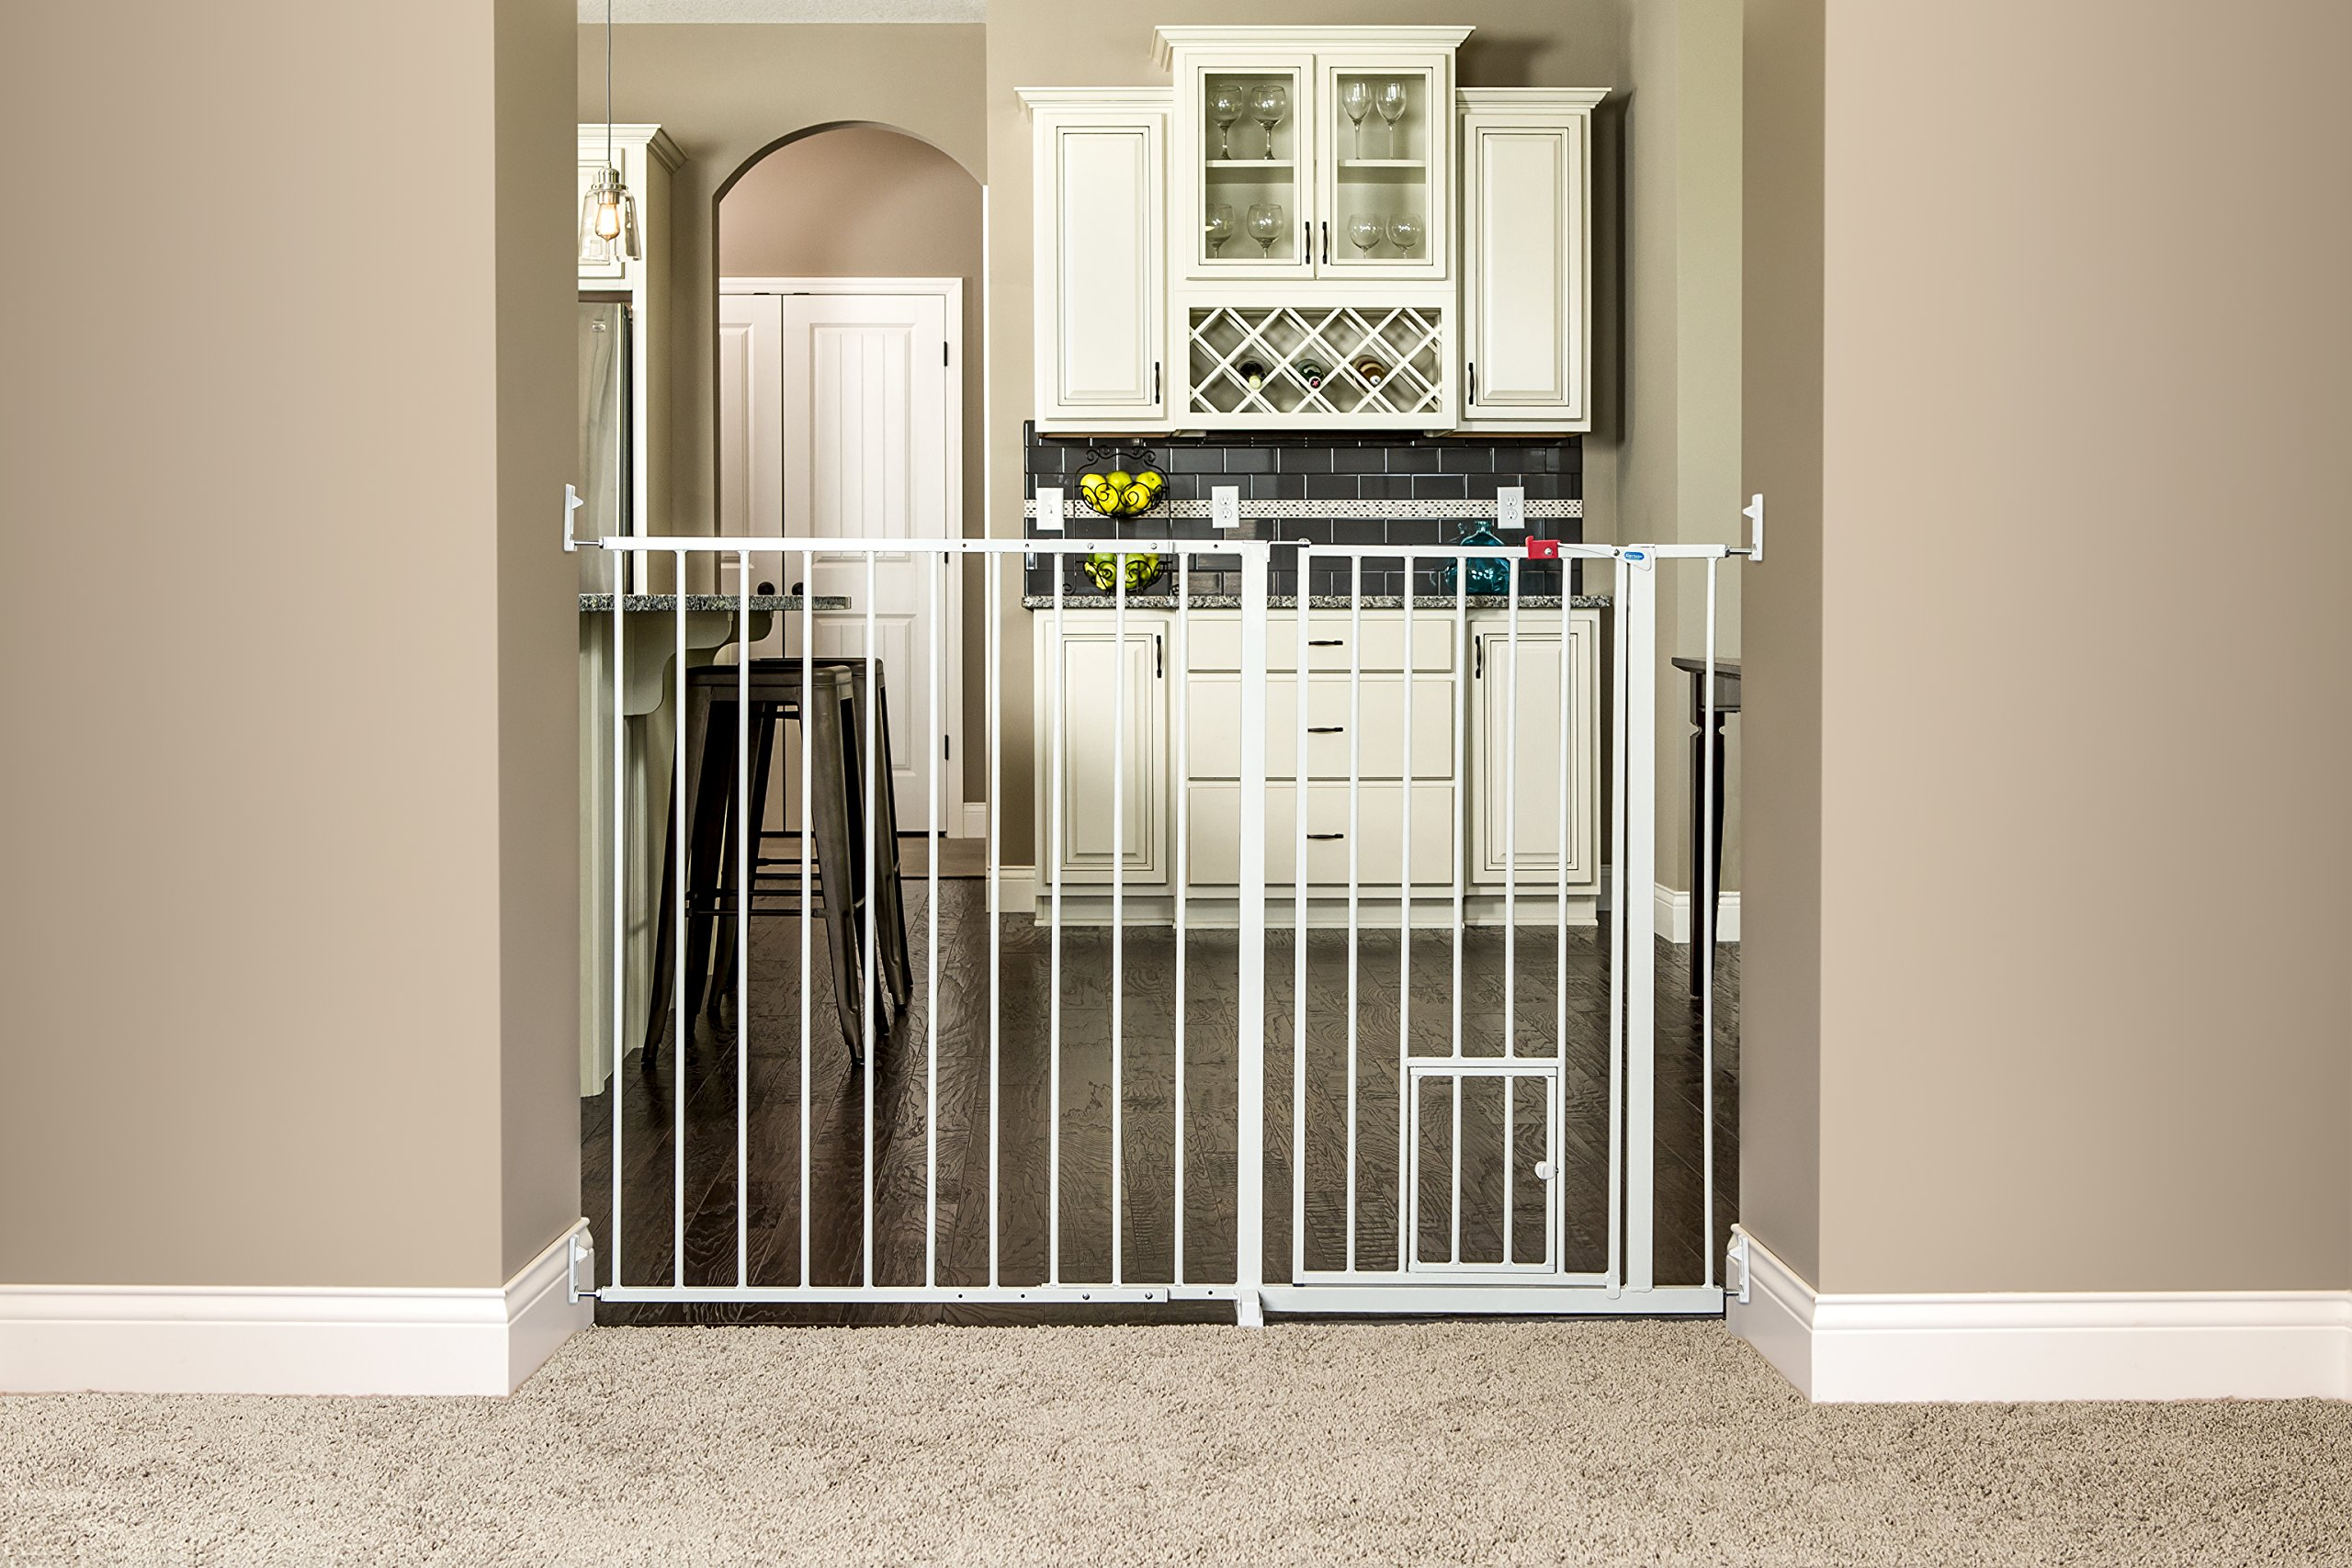 Carlson Maxi Extra Tall Pet Gate, Expands 51-59 Inches Wide by Carlson (Image #3)